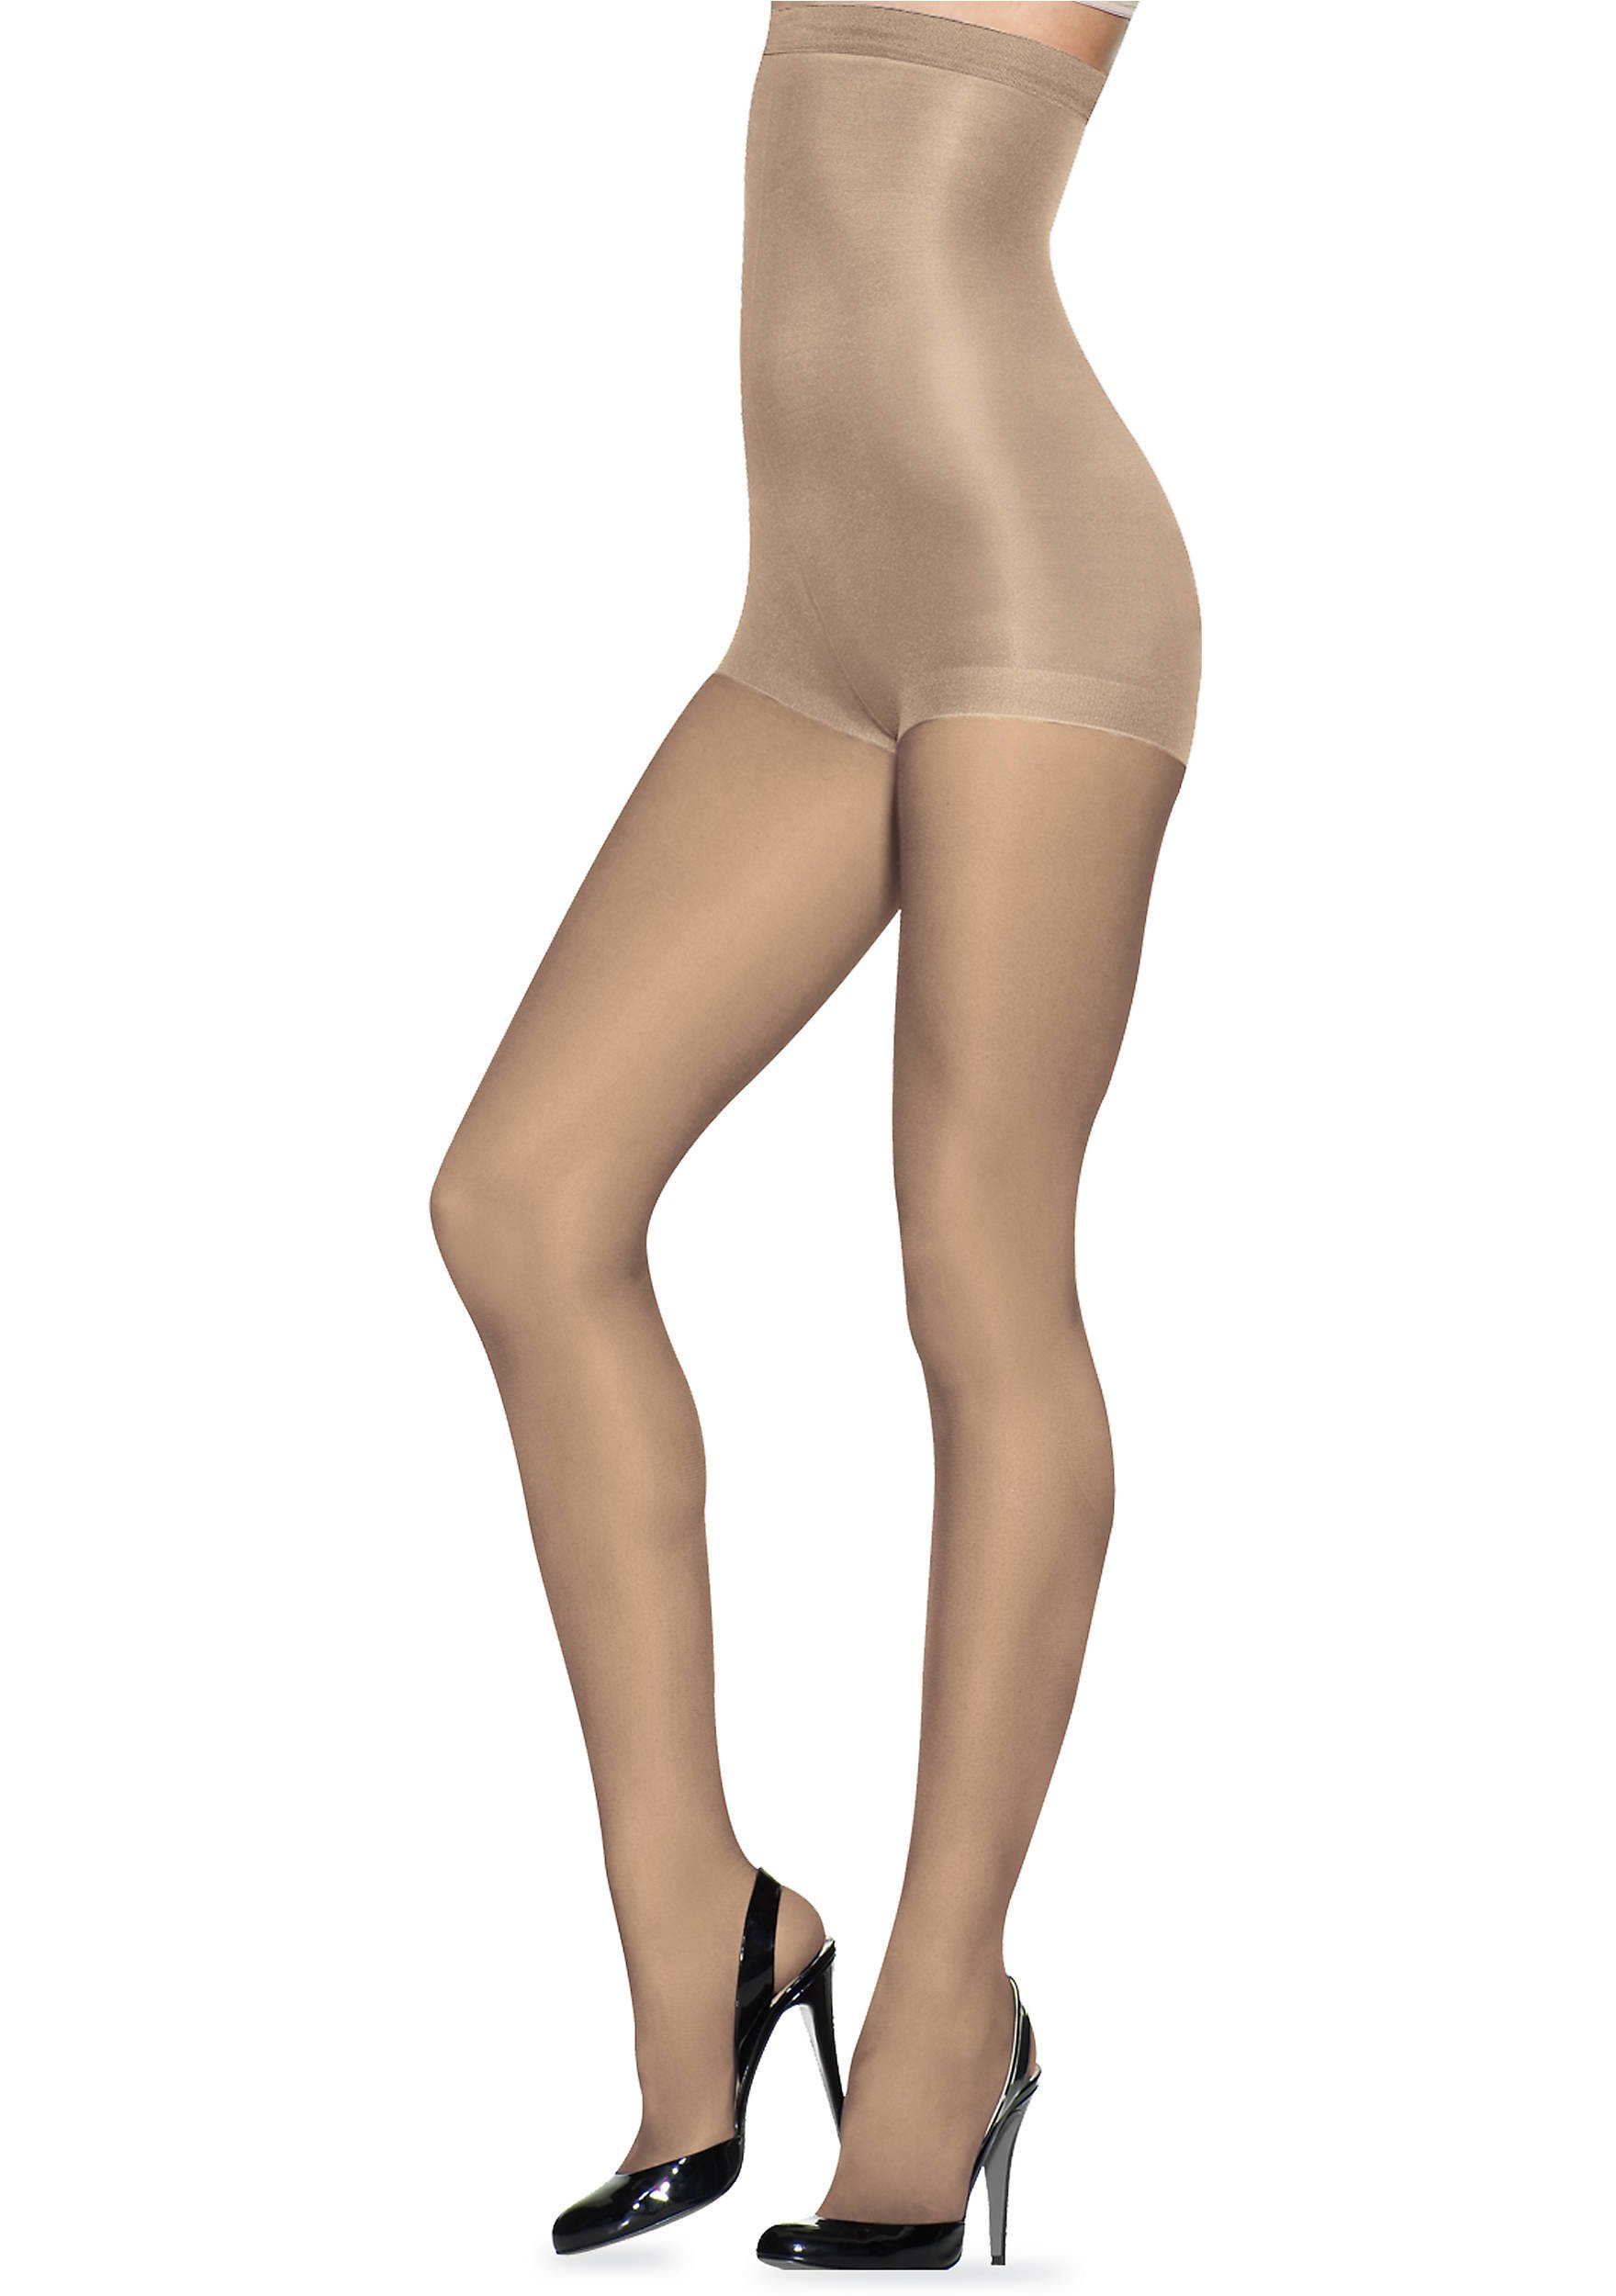 L'eggs Profiles Shaping Sheers -High Waist To Mid Thigh- Tummy Control Top Pantyhose 3-Pack, Nude, Medium